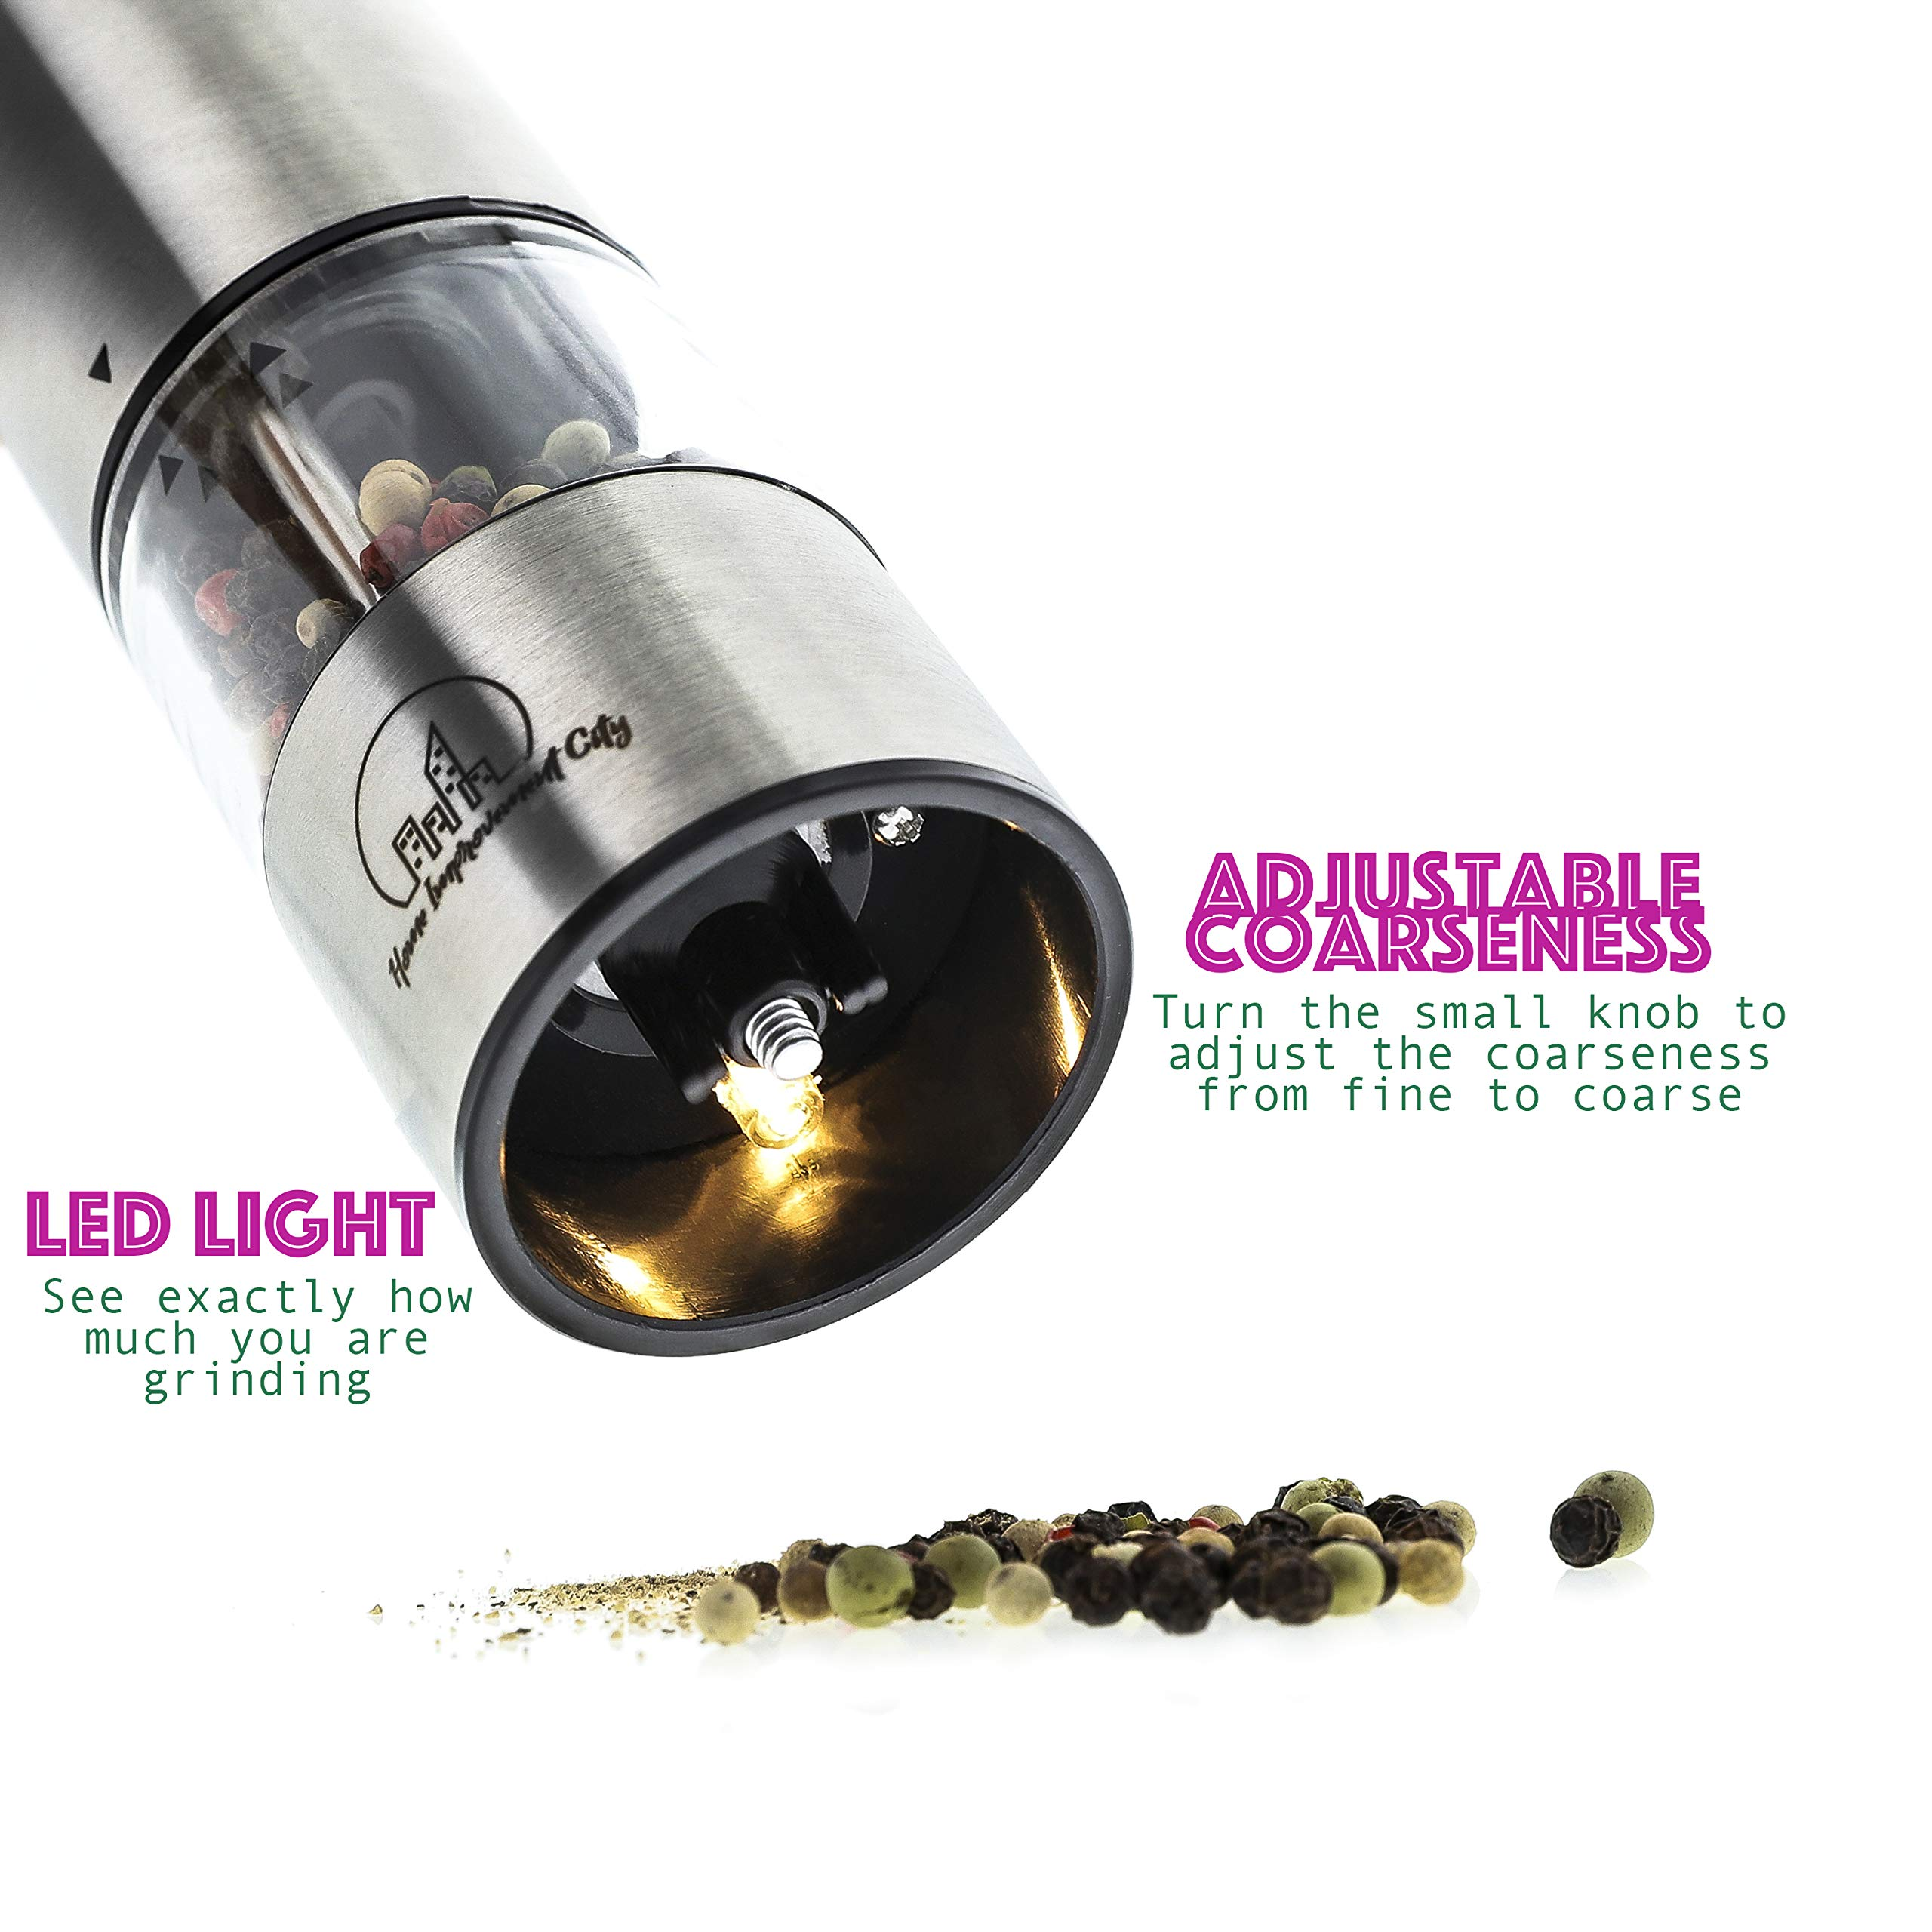 Electric Salt And Pepper Grinder Set by Home Improvement City - Battery Operated Stainless Steel Mills With LED Lights And Clear Acrylic Glass - Automatic One Hand Operation And Adjustable Coarseness by Home Improvement City (Image #4)